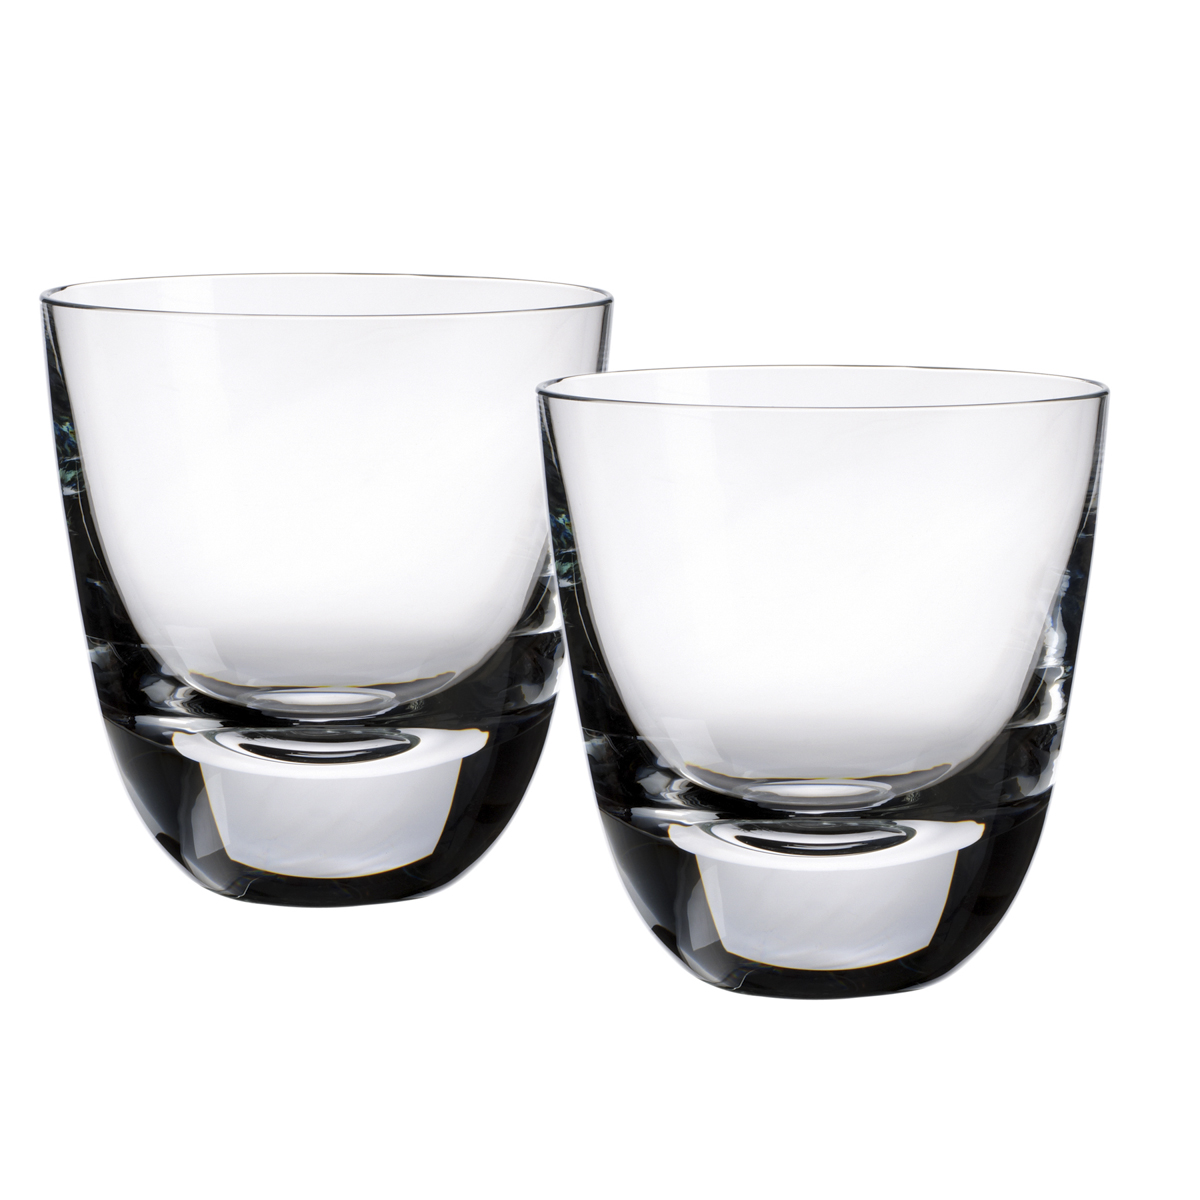 Set/2 Single Old Fashioned Glasses